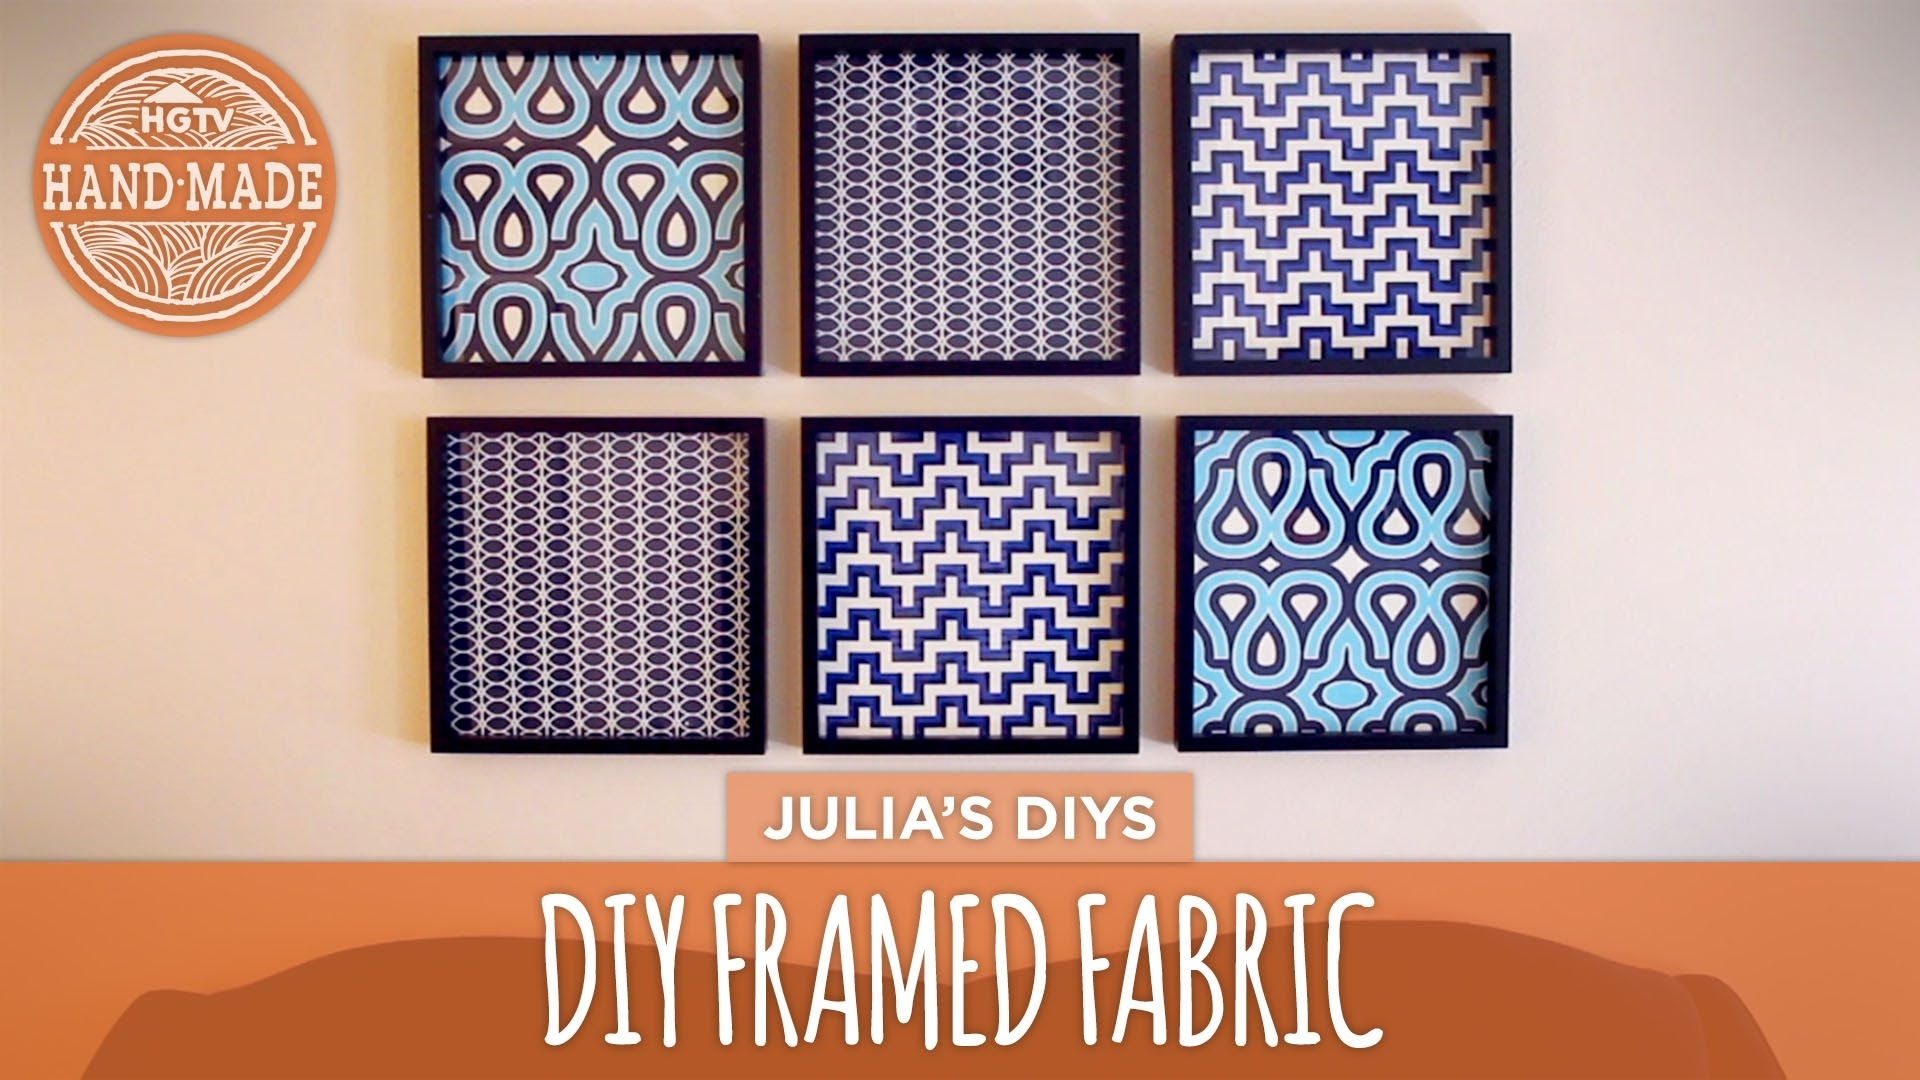 Diy Framed Fabric Gallery Wall - Hgtv Handmade - Youtube in Most Up-to-Date Fabric Wall Art Frames